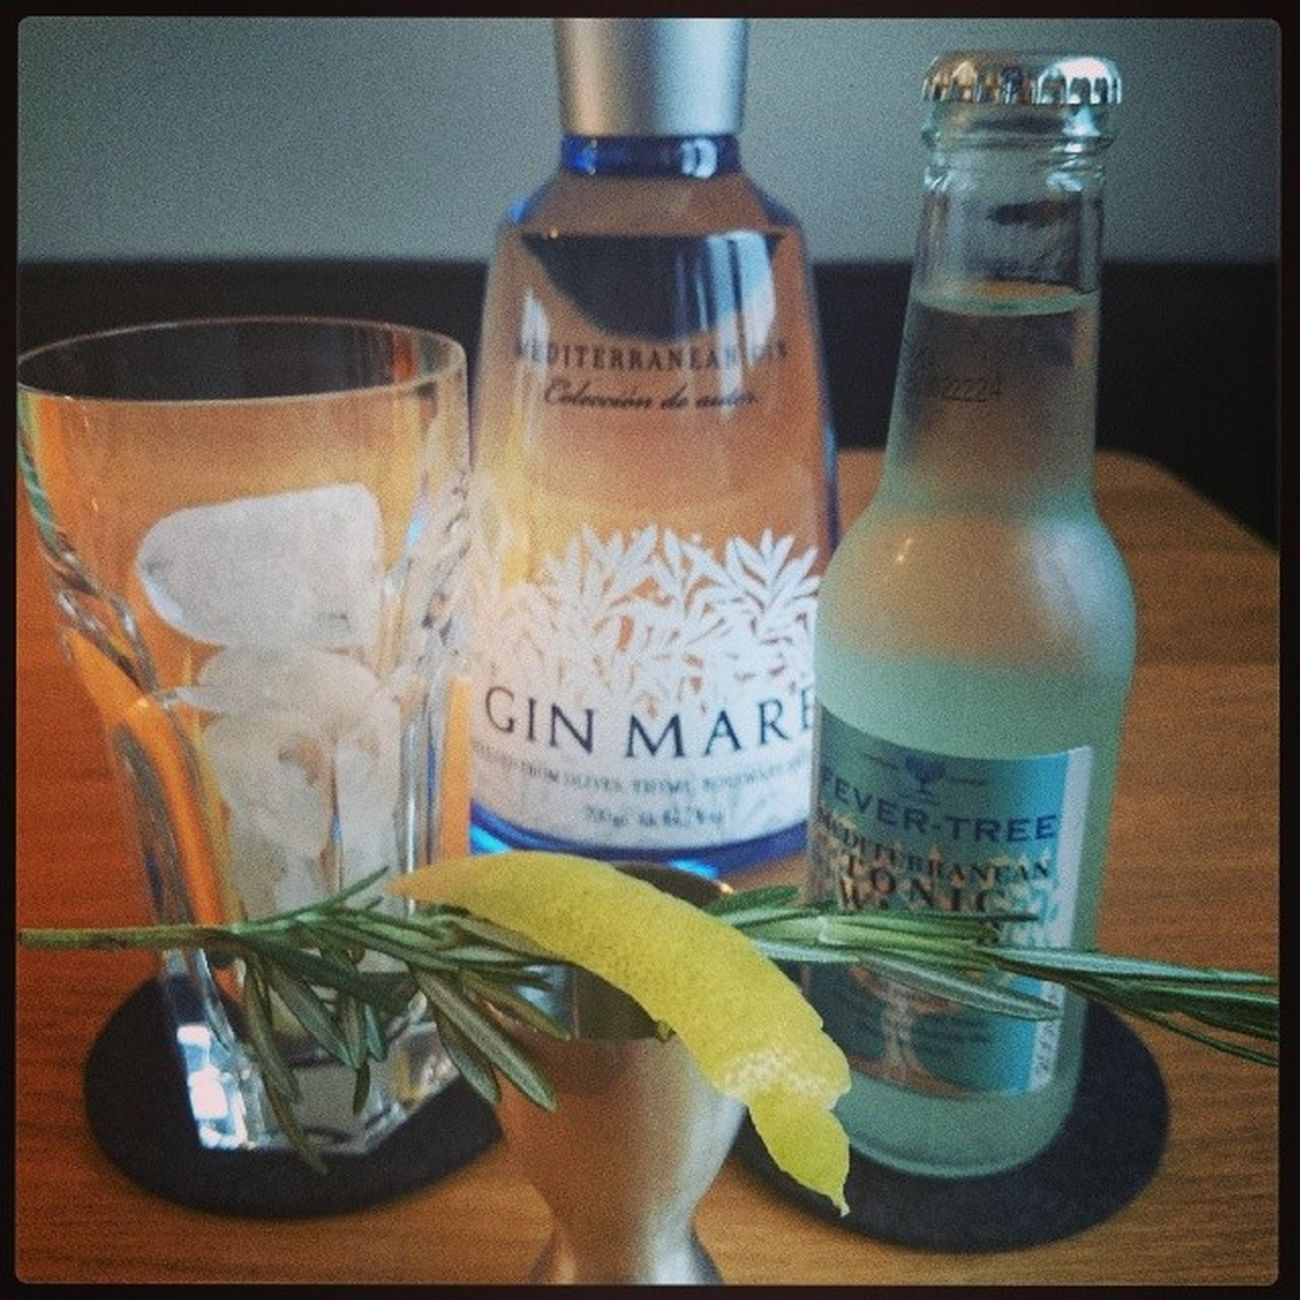 that's the stuff, boys and girls. Ginmare Fever -tree Rosemary